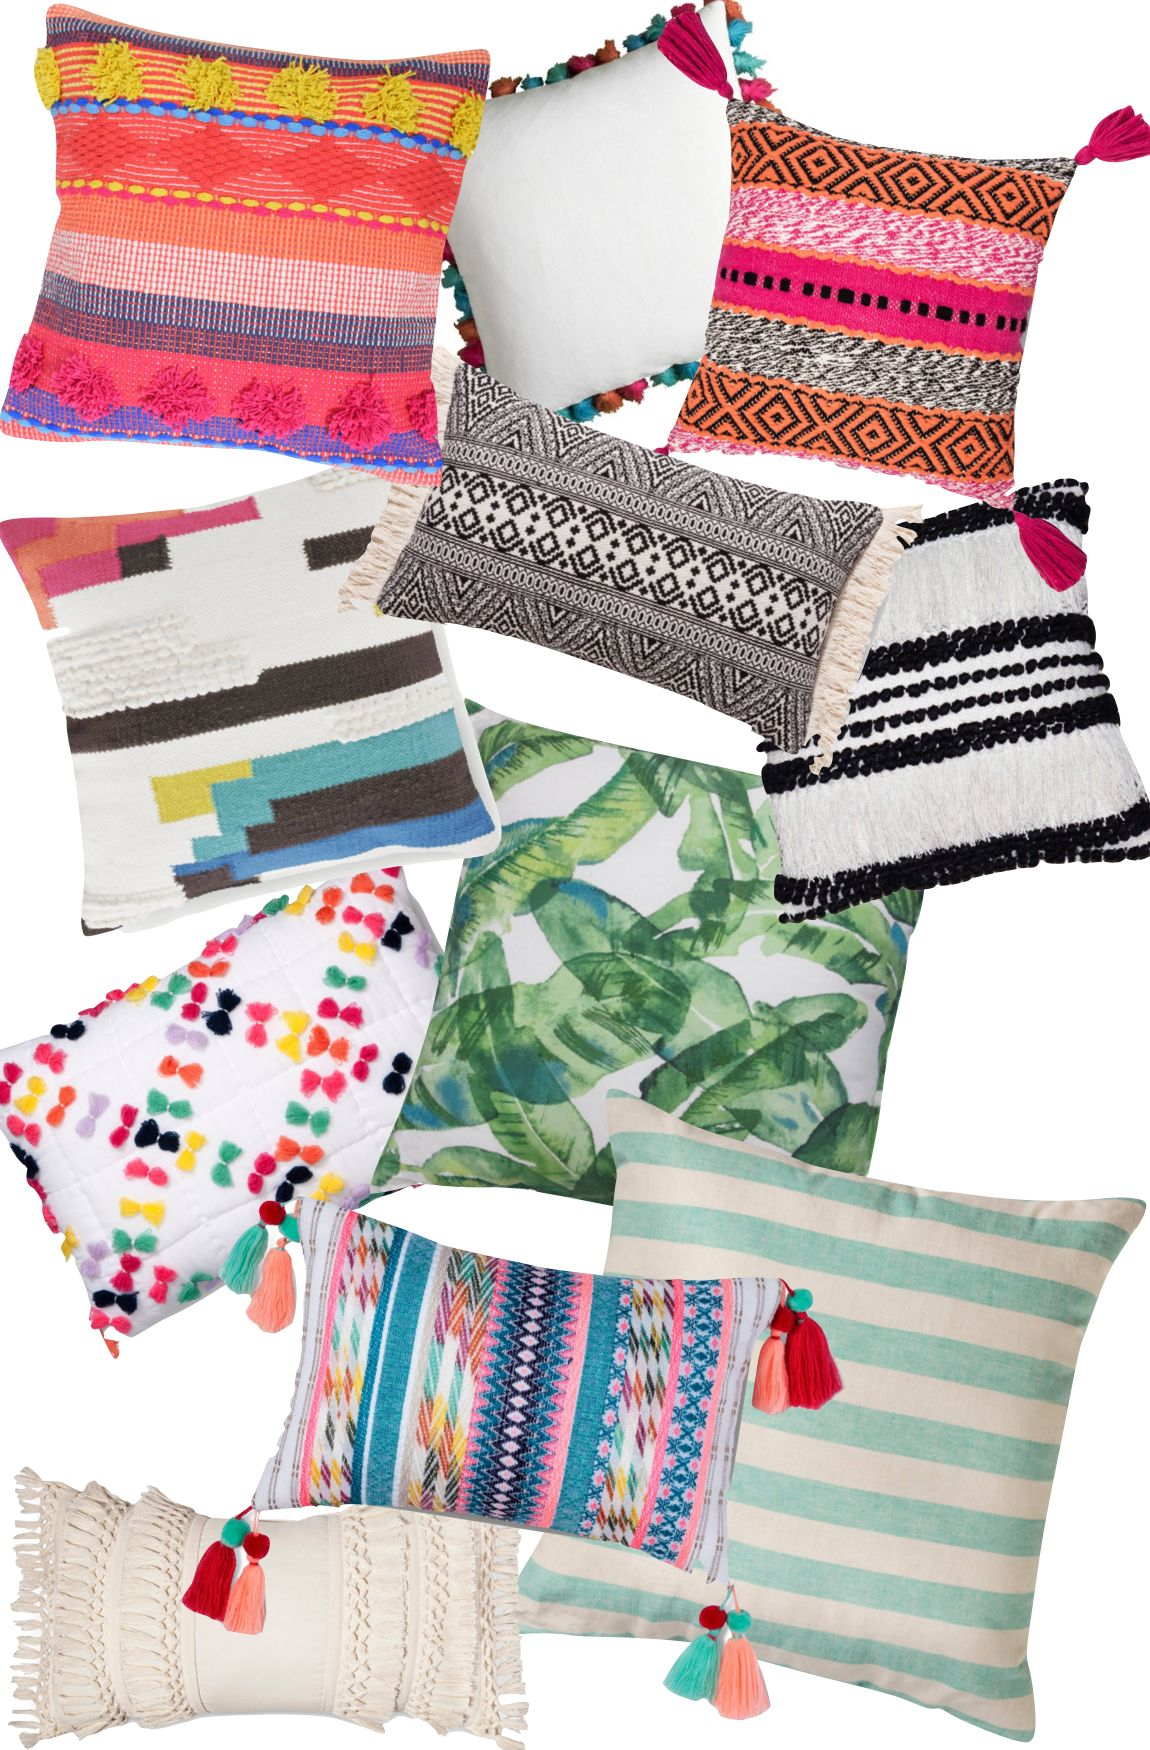 Pillows On Sale At Target Target Is Having A Great Sale On Pillows Right Now They Have